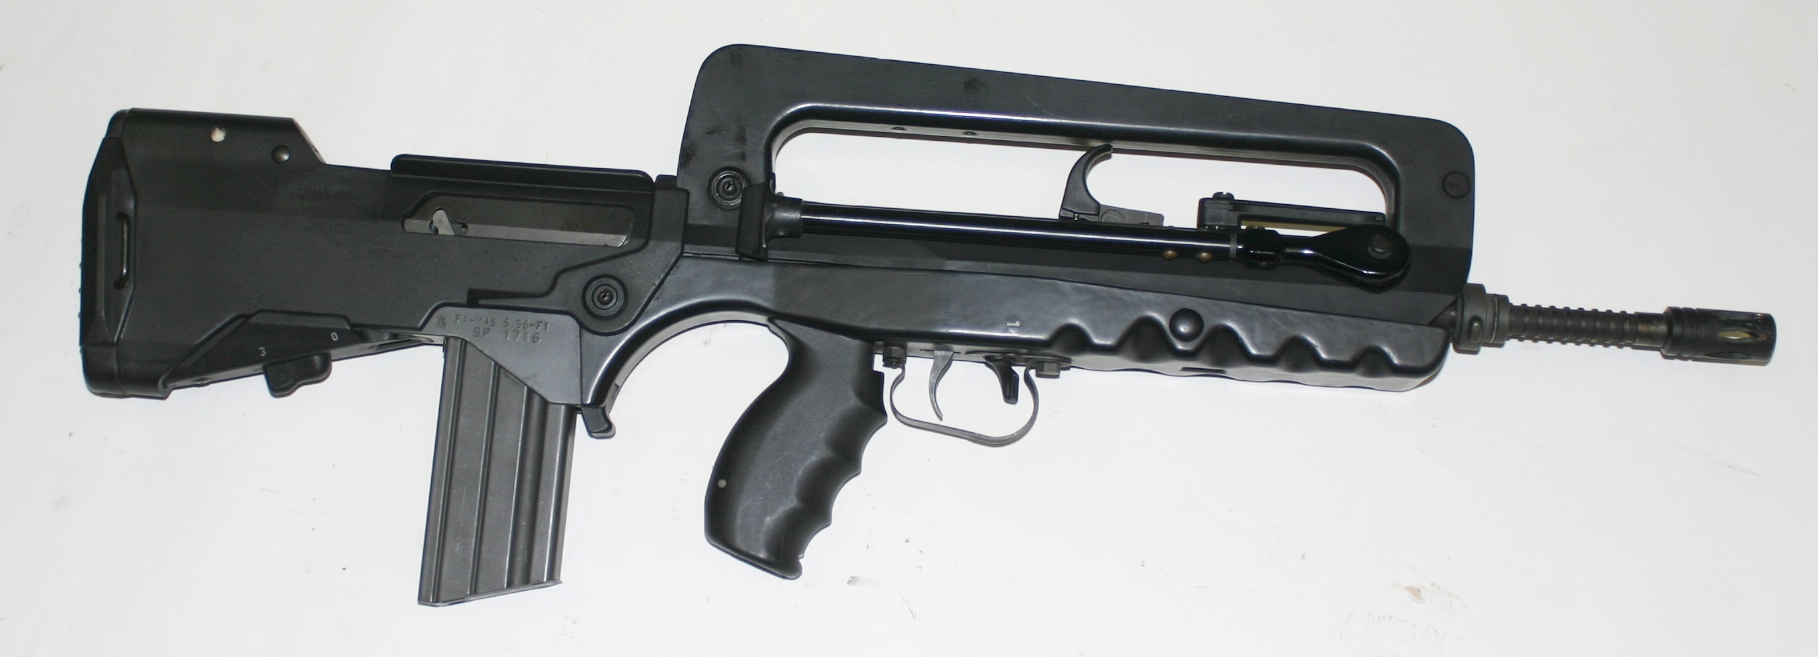 French FAMAS F1 – Forgotten Weapons